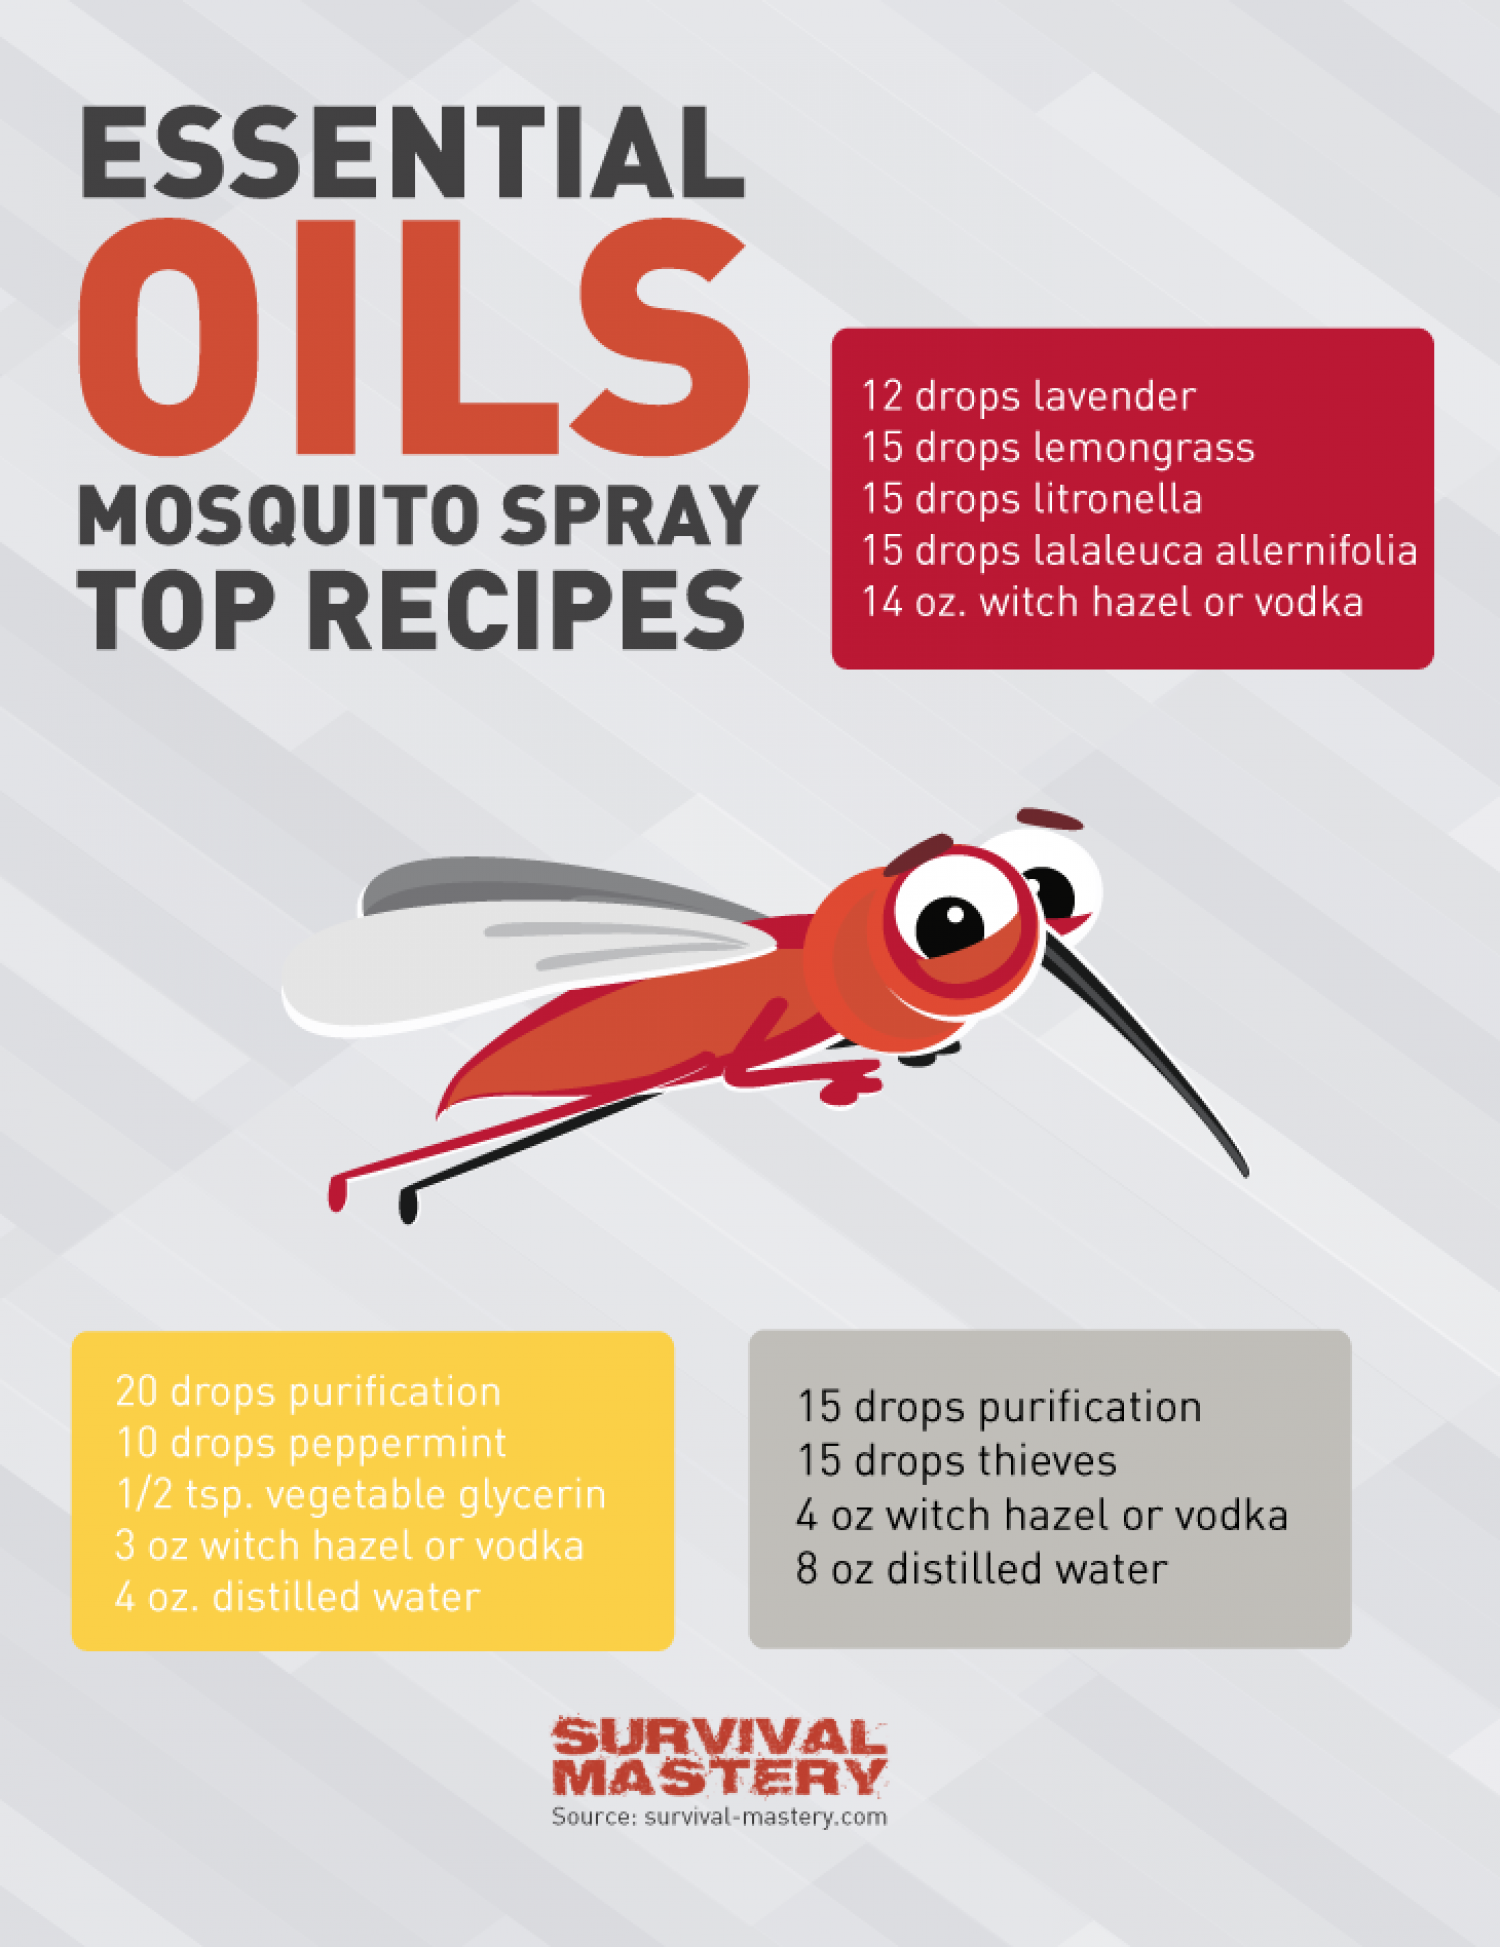 Essentials Oils for Mosquito Spray Infographic Infographic